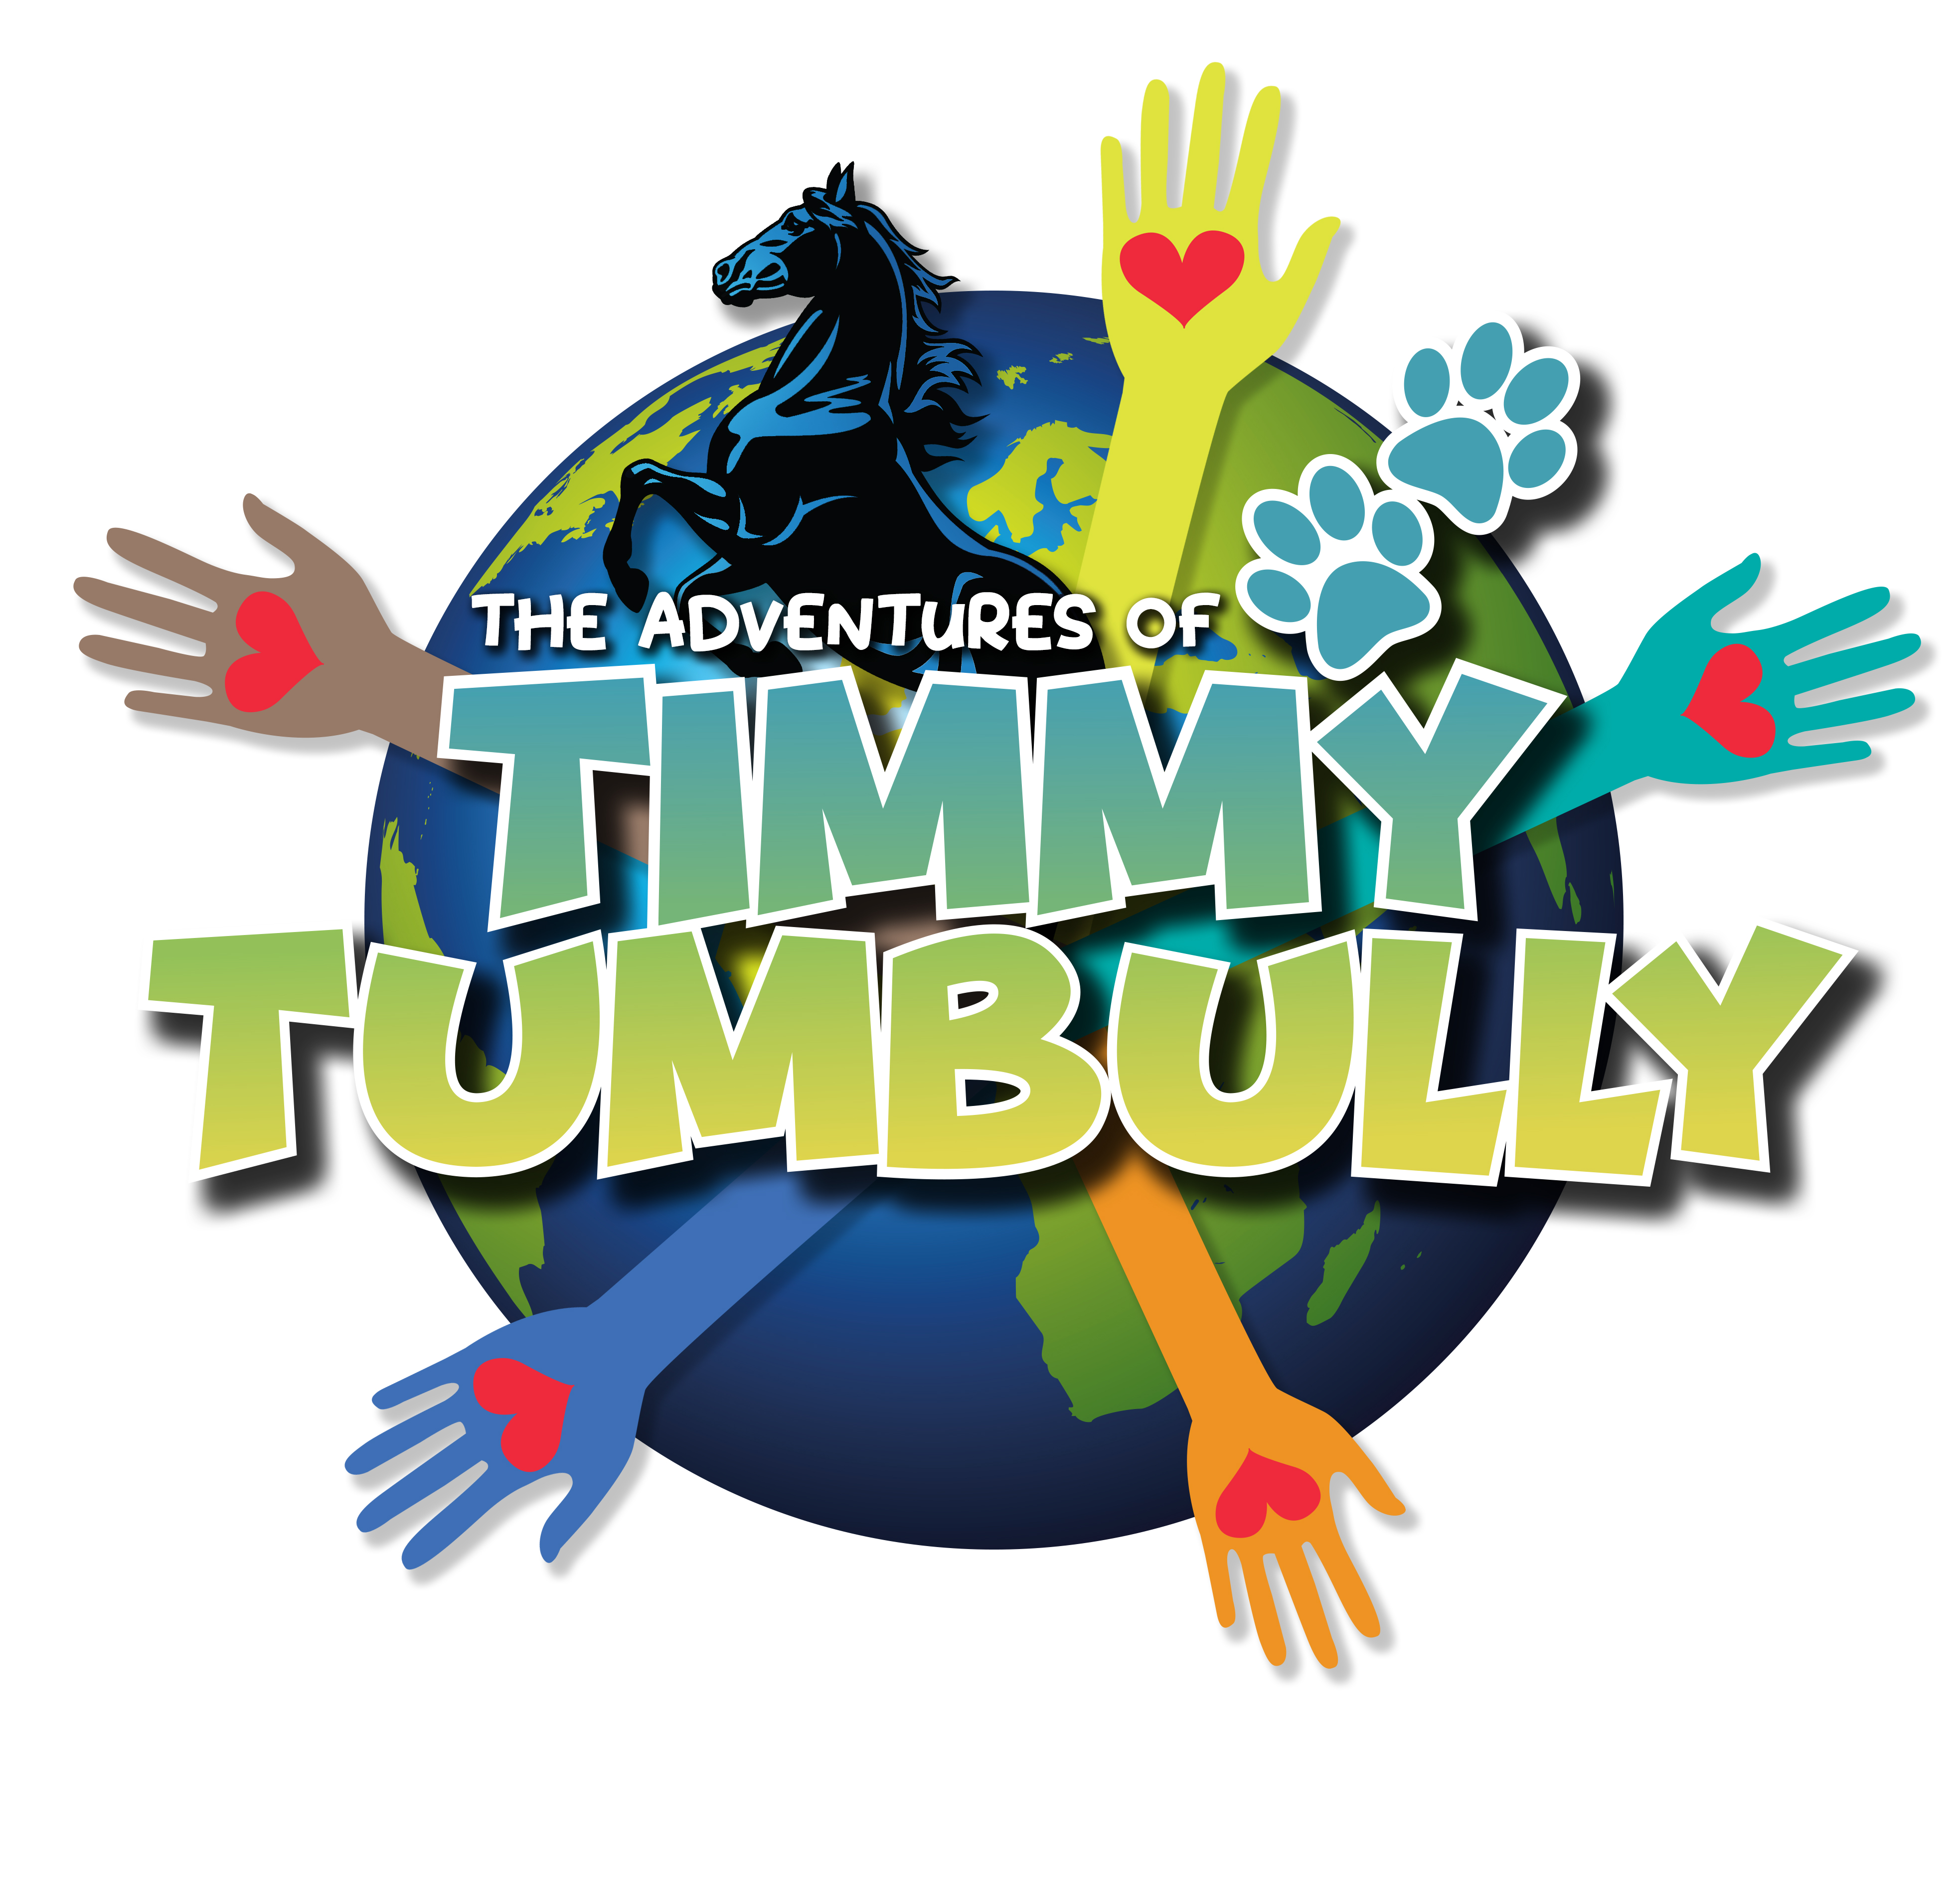 The Adventures of Timmy Tumbully